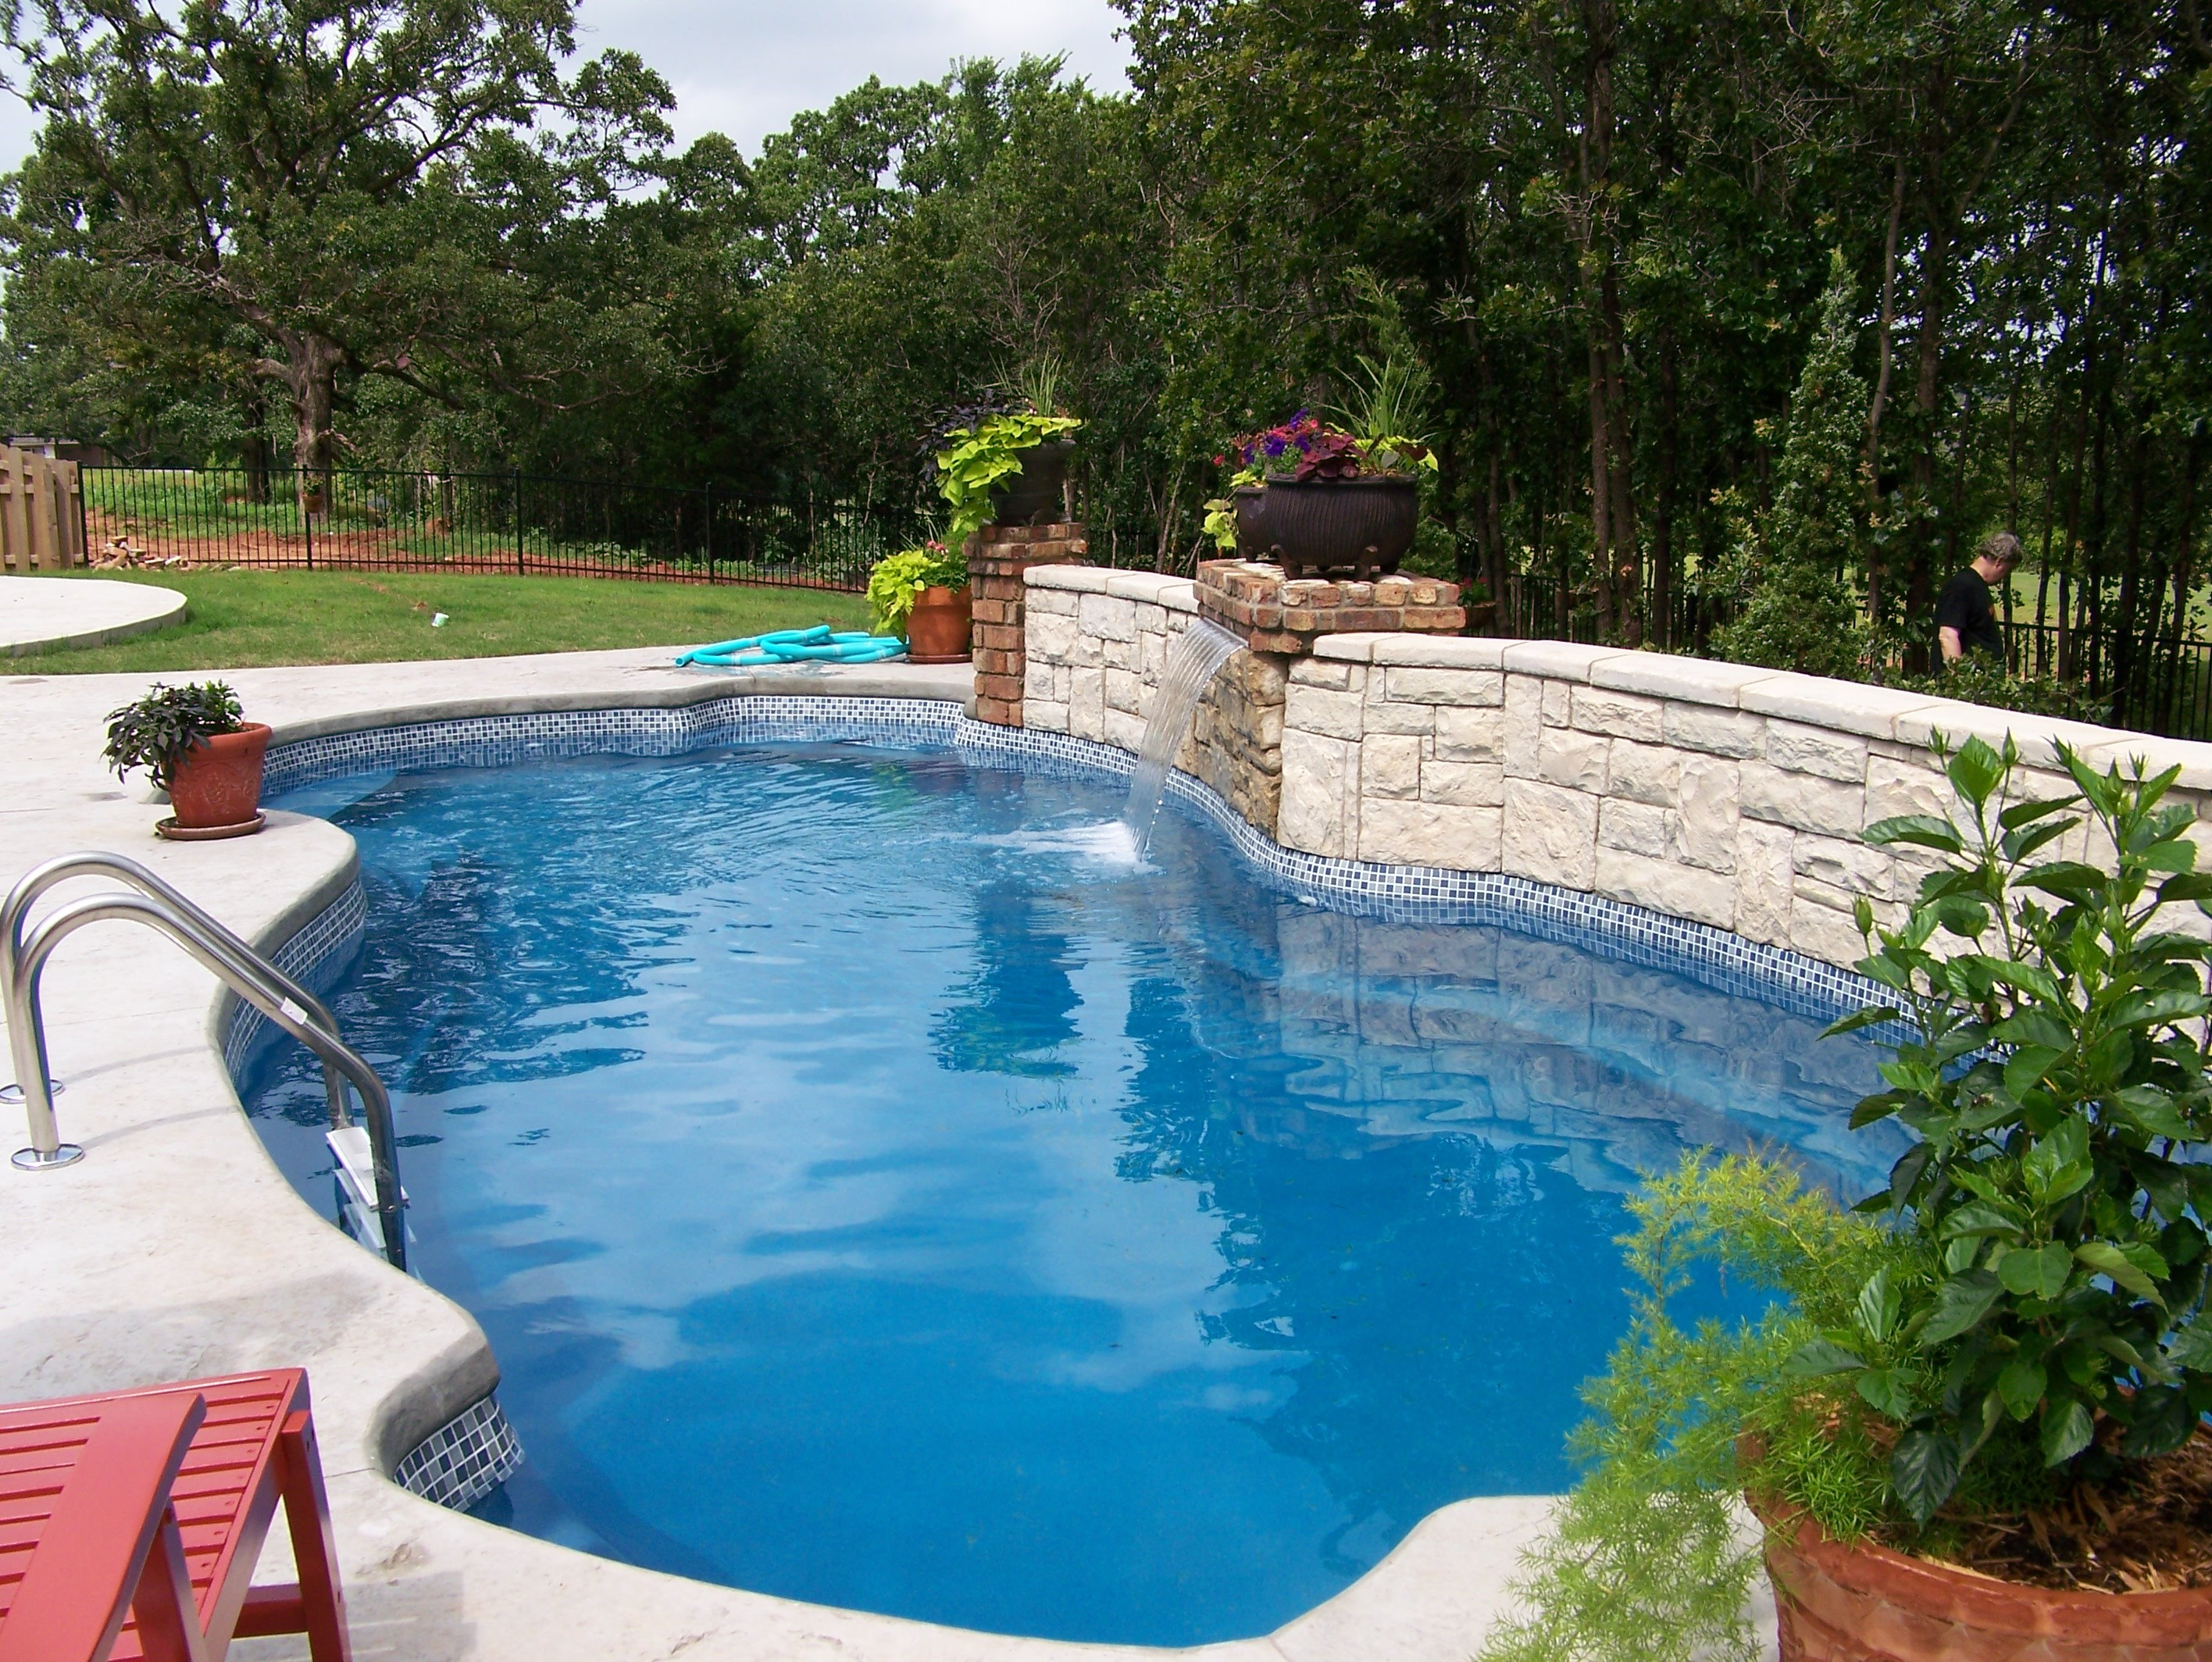 Fiberglass pool waterbar feature swimming pool - Swimming pool contractors oklahoma city ...